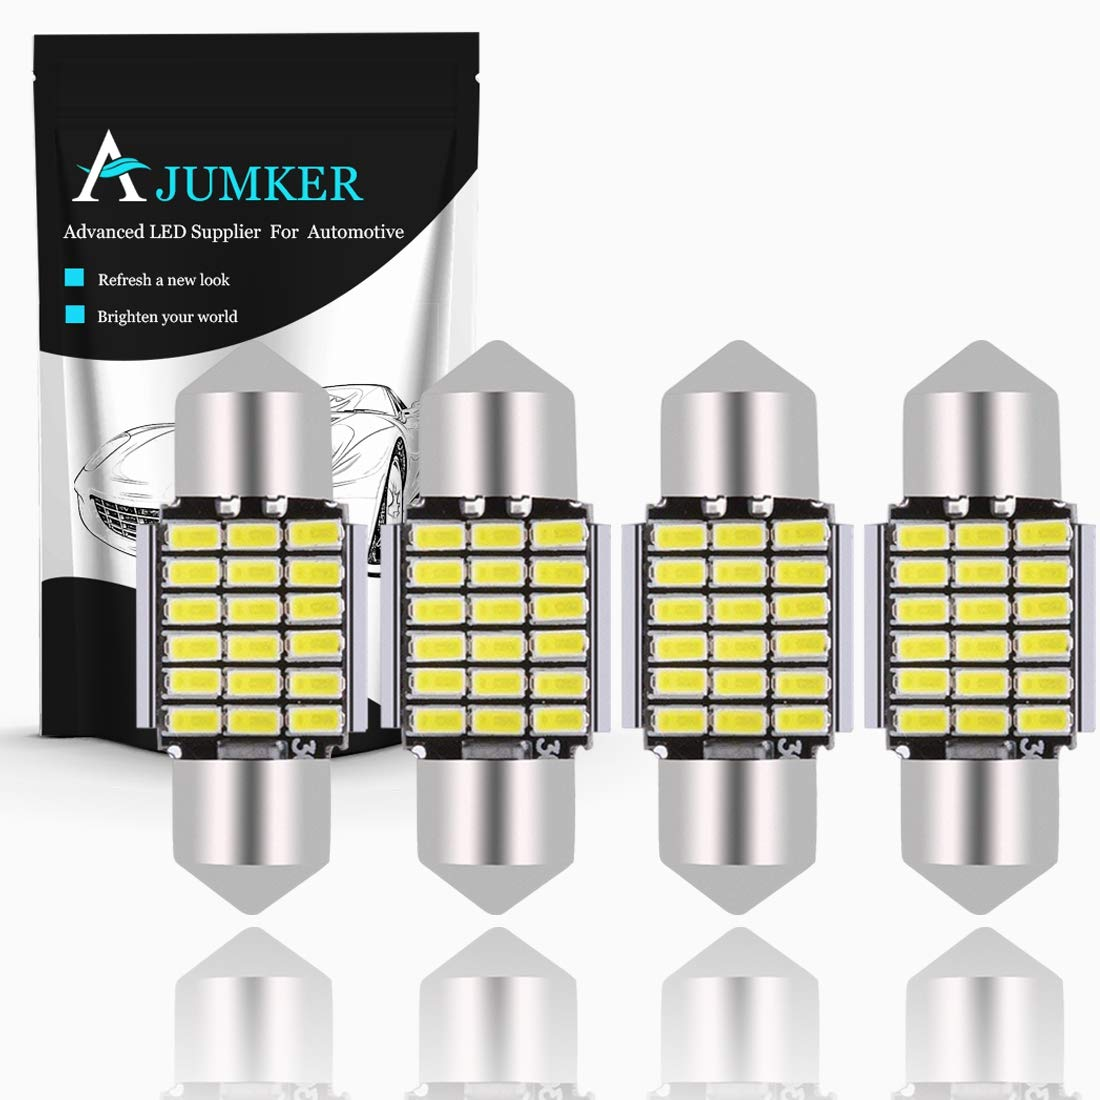 AJUMKER Extremely Bright 3014 Chipsets Aluminum CanBus Error Free 1.53'' 39mm C5W DE3423 DE3425 3423 3425 6411 6418 LED Festoon Car Interior Dome Map License Plate Lights 6500K Xenon White 12V (Pack of 4)